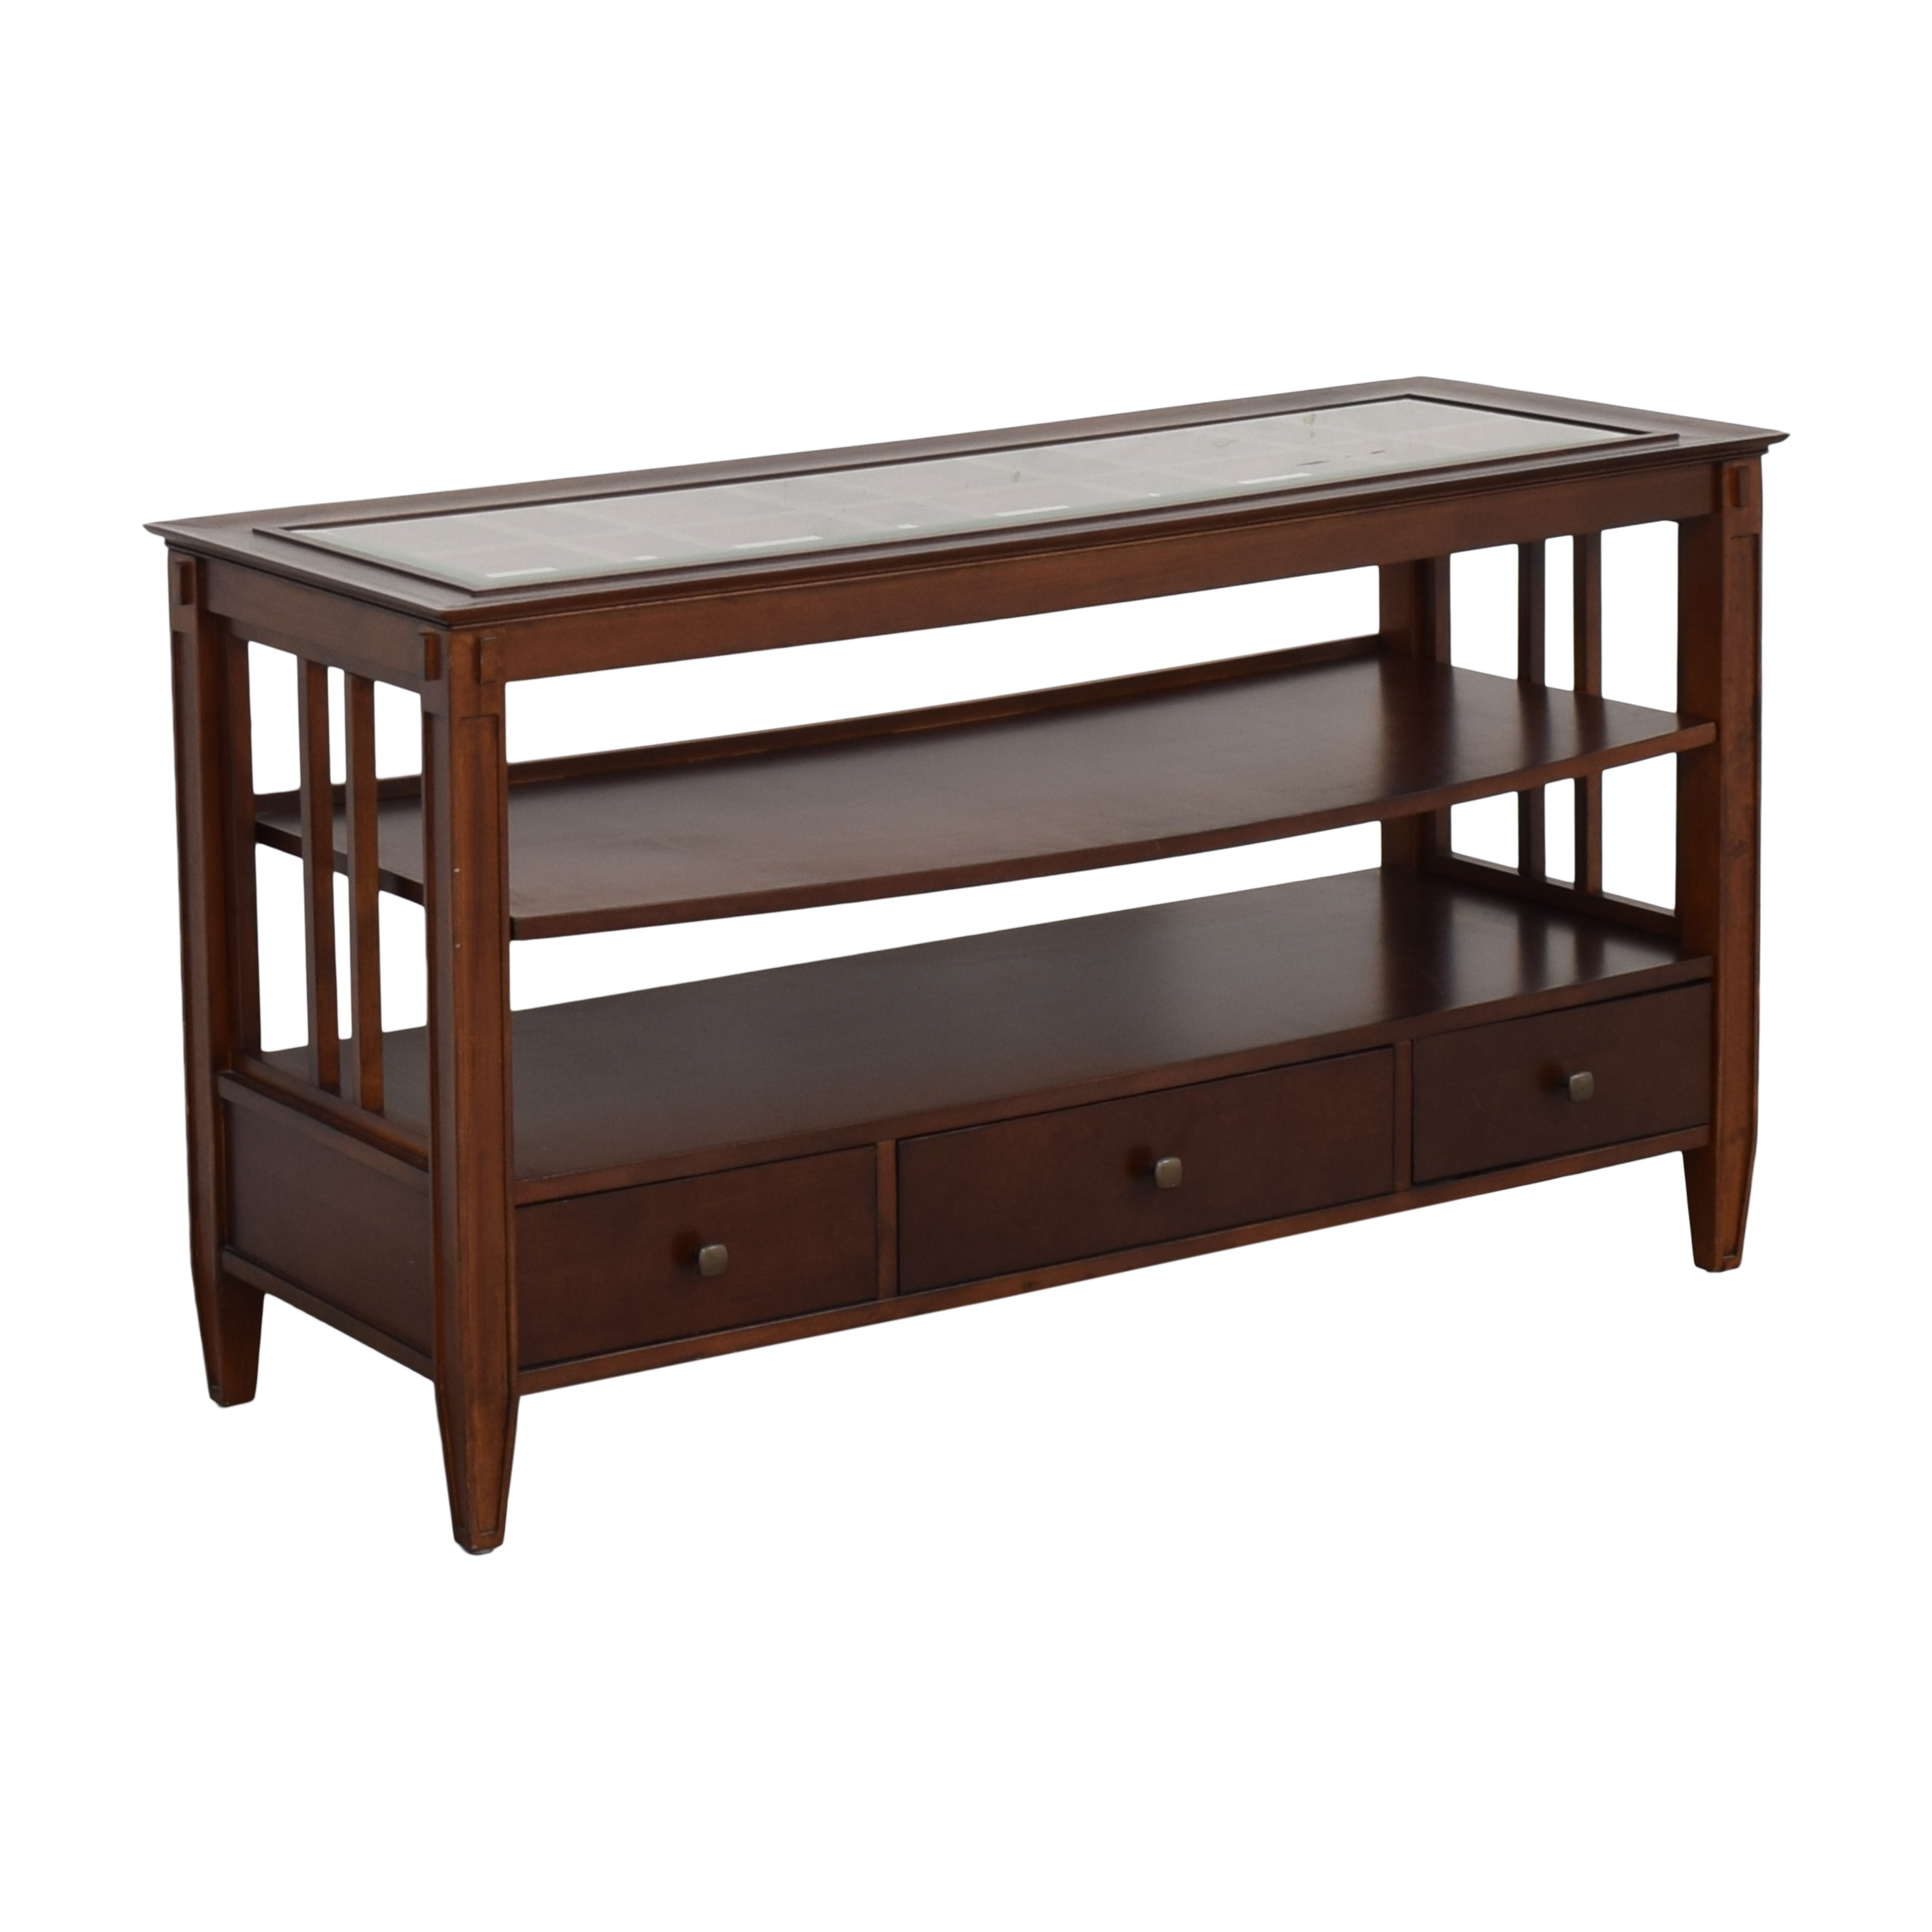 Macy's Three Drawer Console Table / Storage